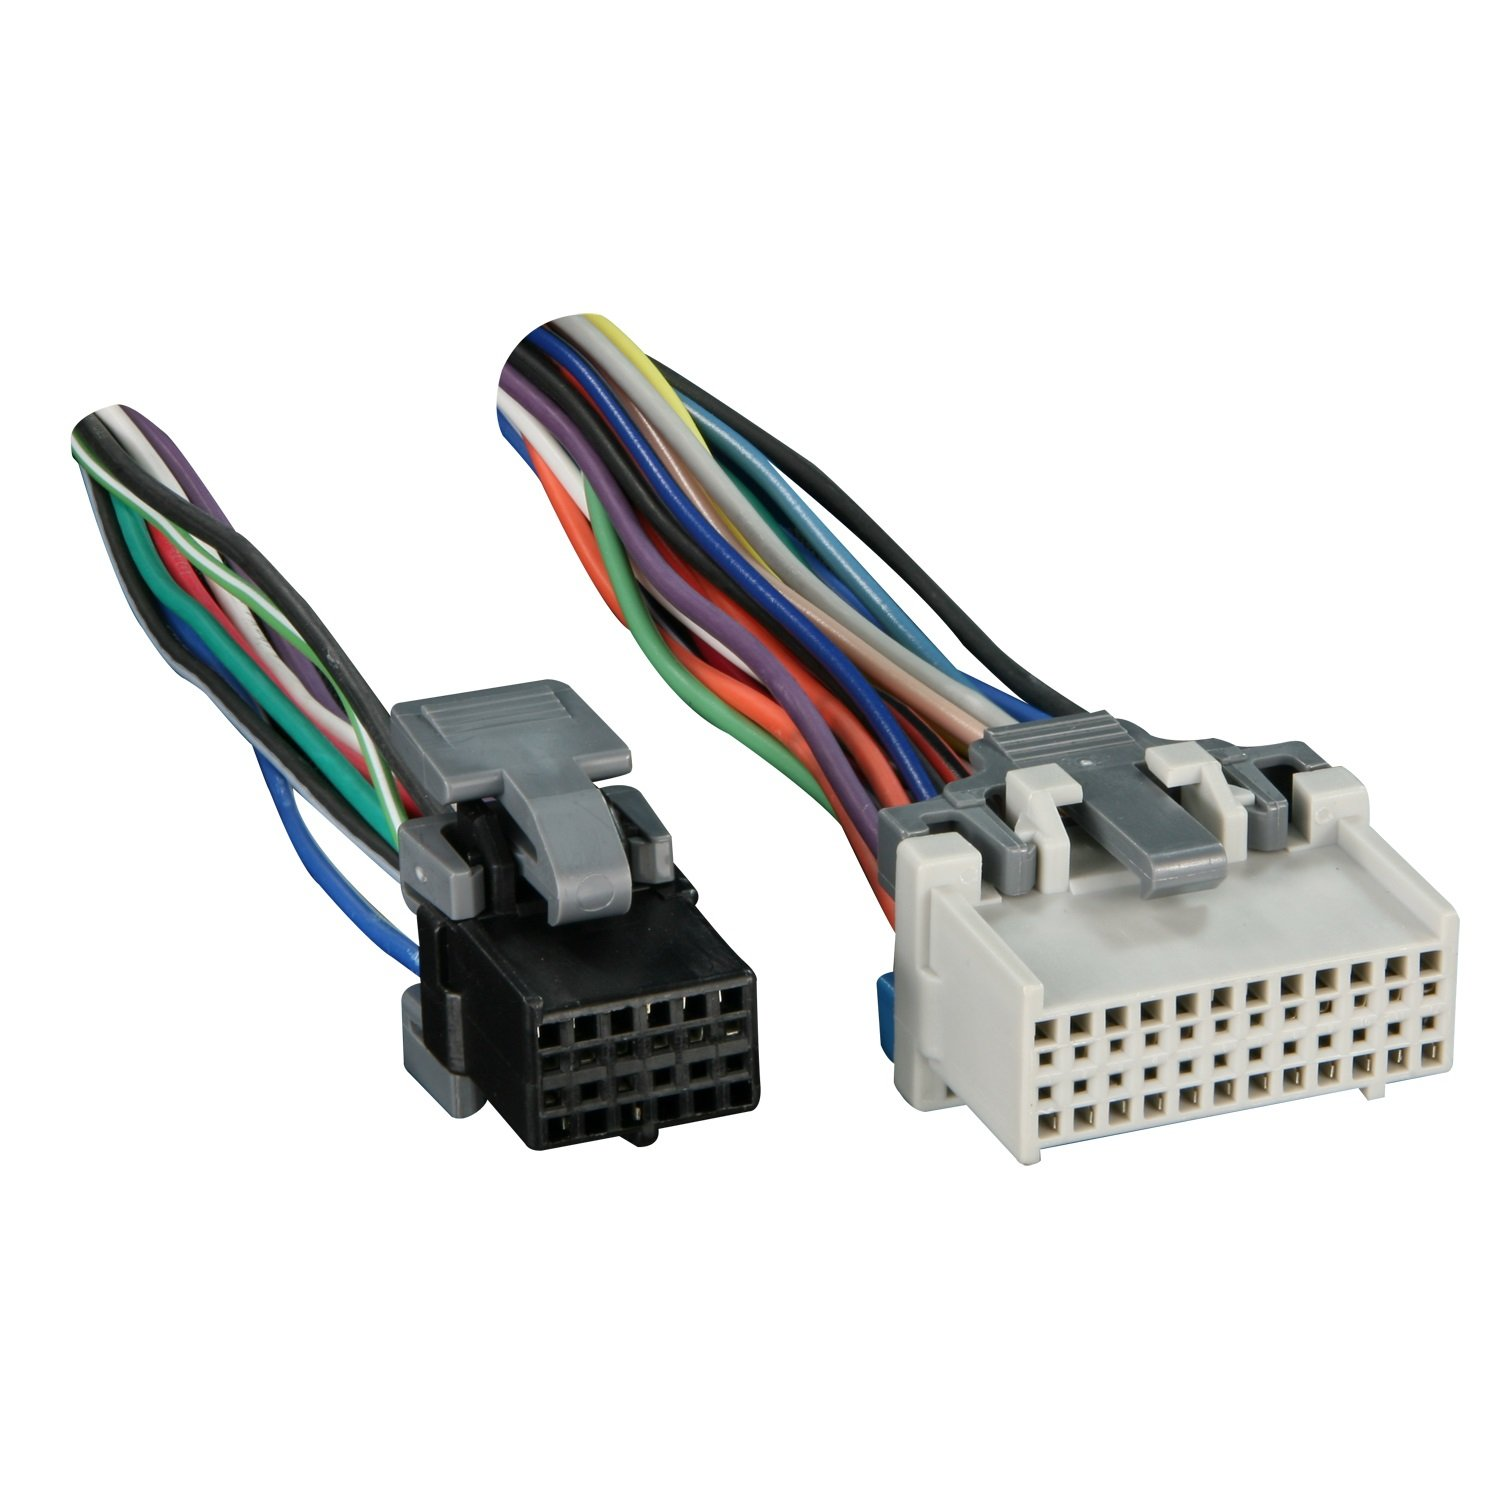 711log4bdML._SL1500_ amazon com metra turbowires 71 2003 1 wiring harness car electronics GM Wiring Color Codes at webbmarketing.co